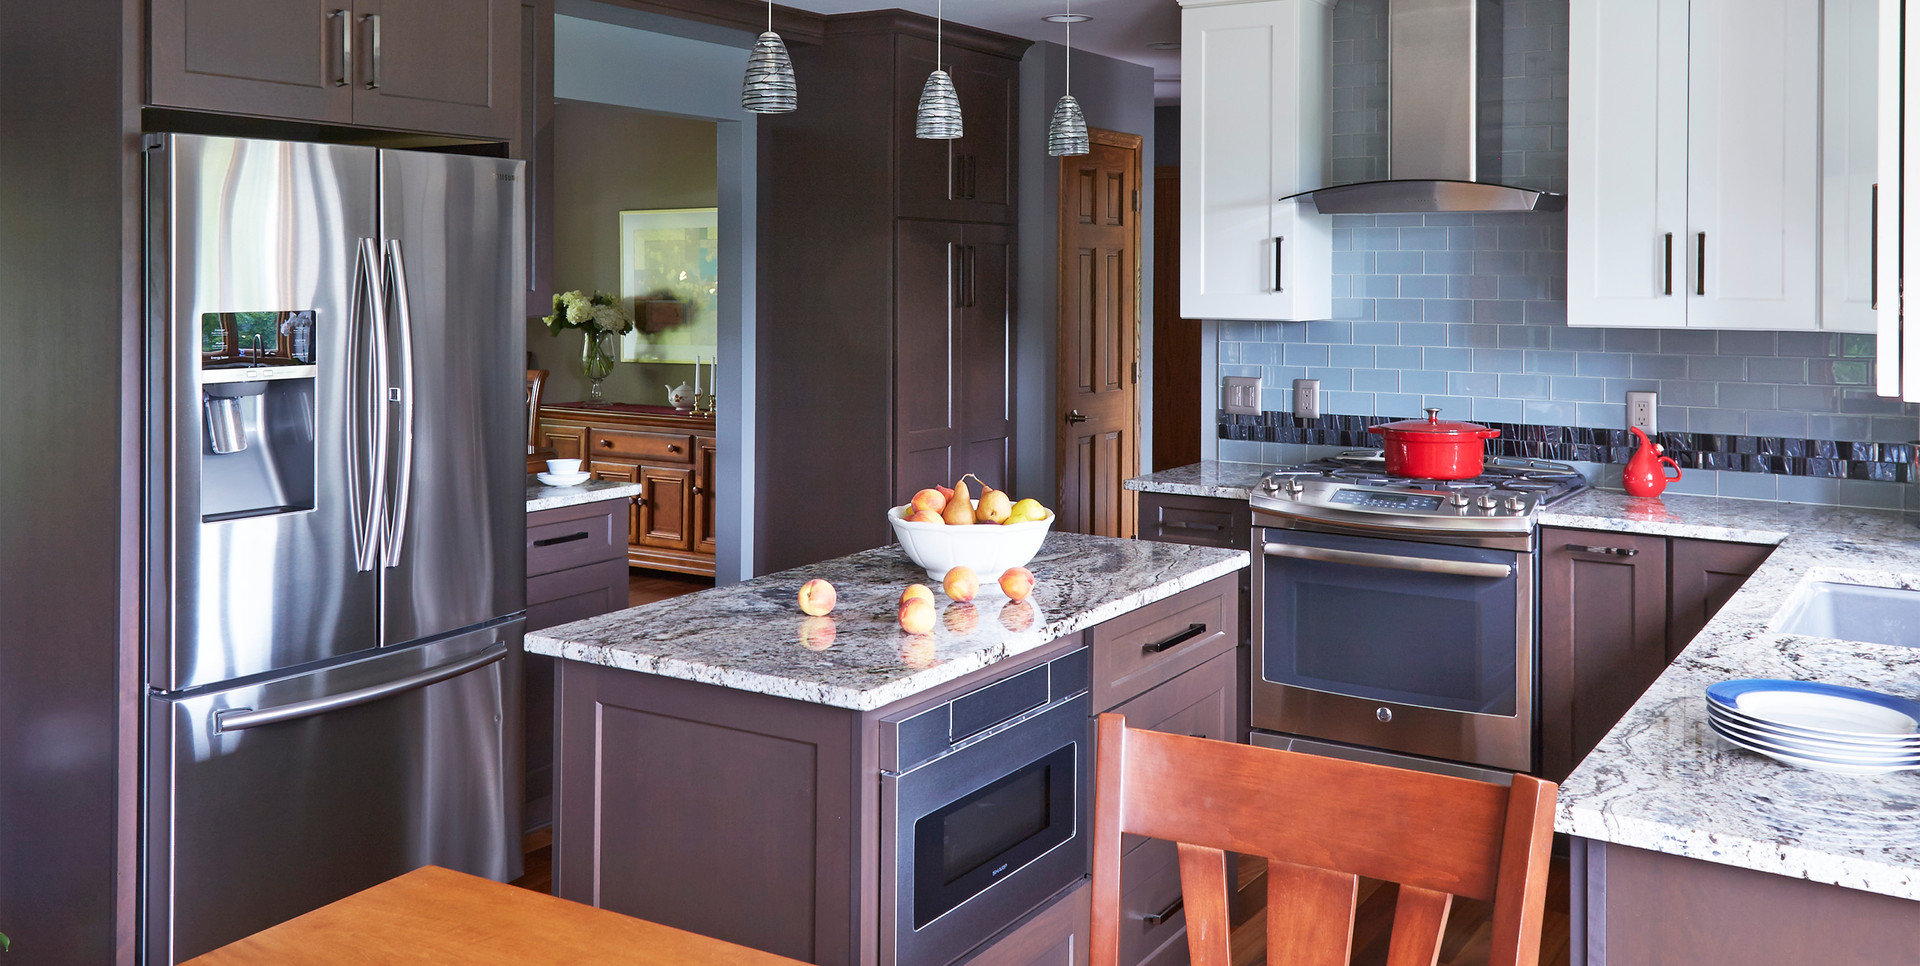 Hubertus Contemporary Kitchen - After